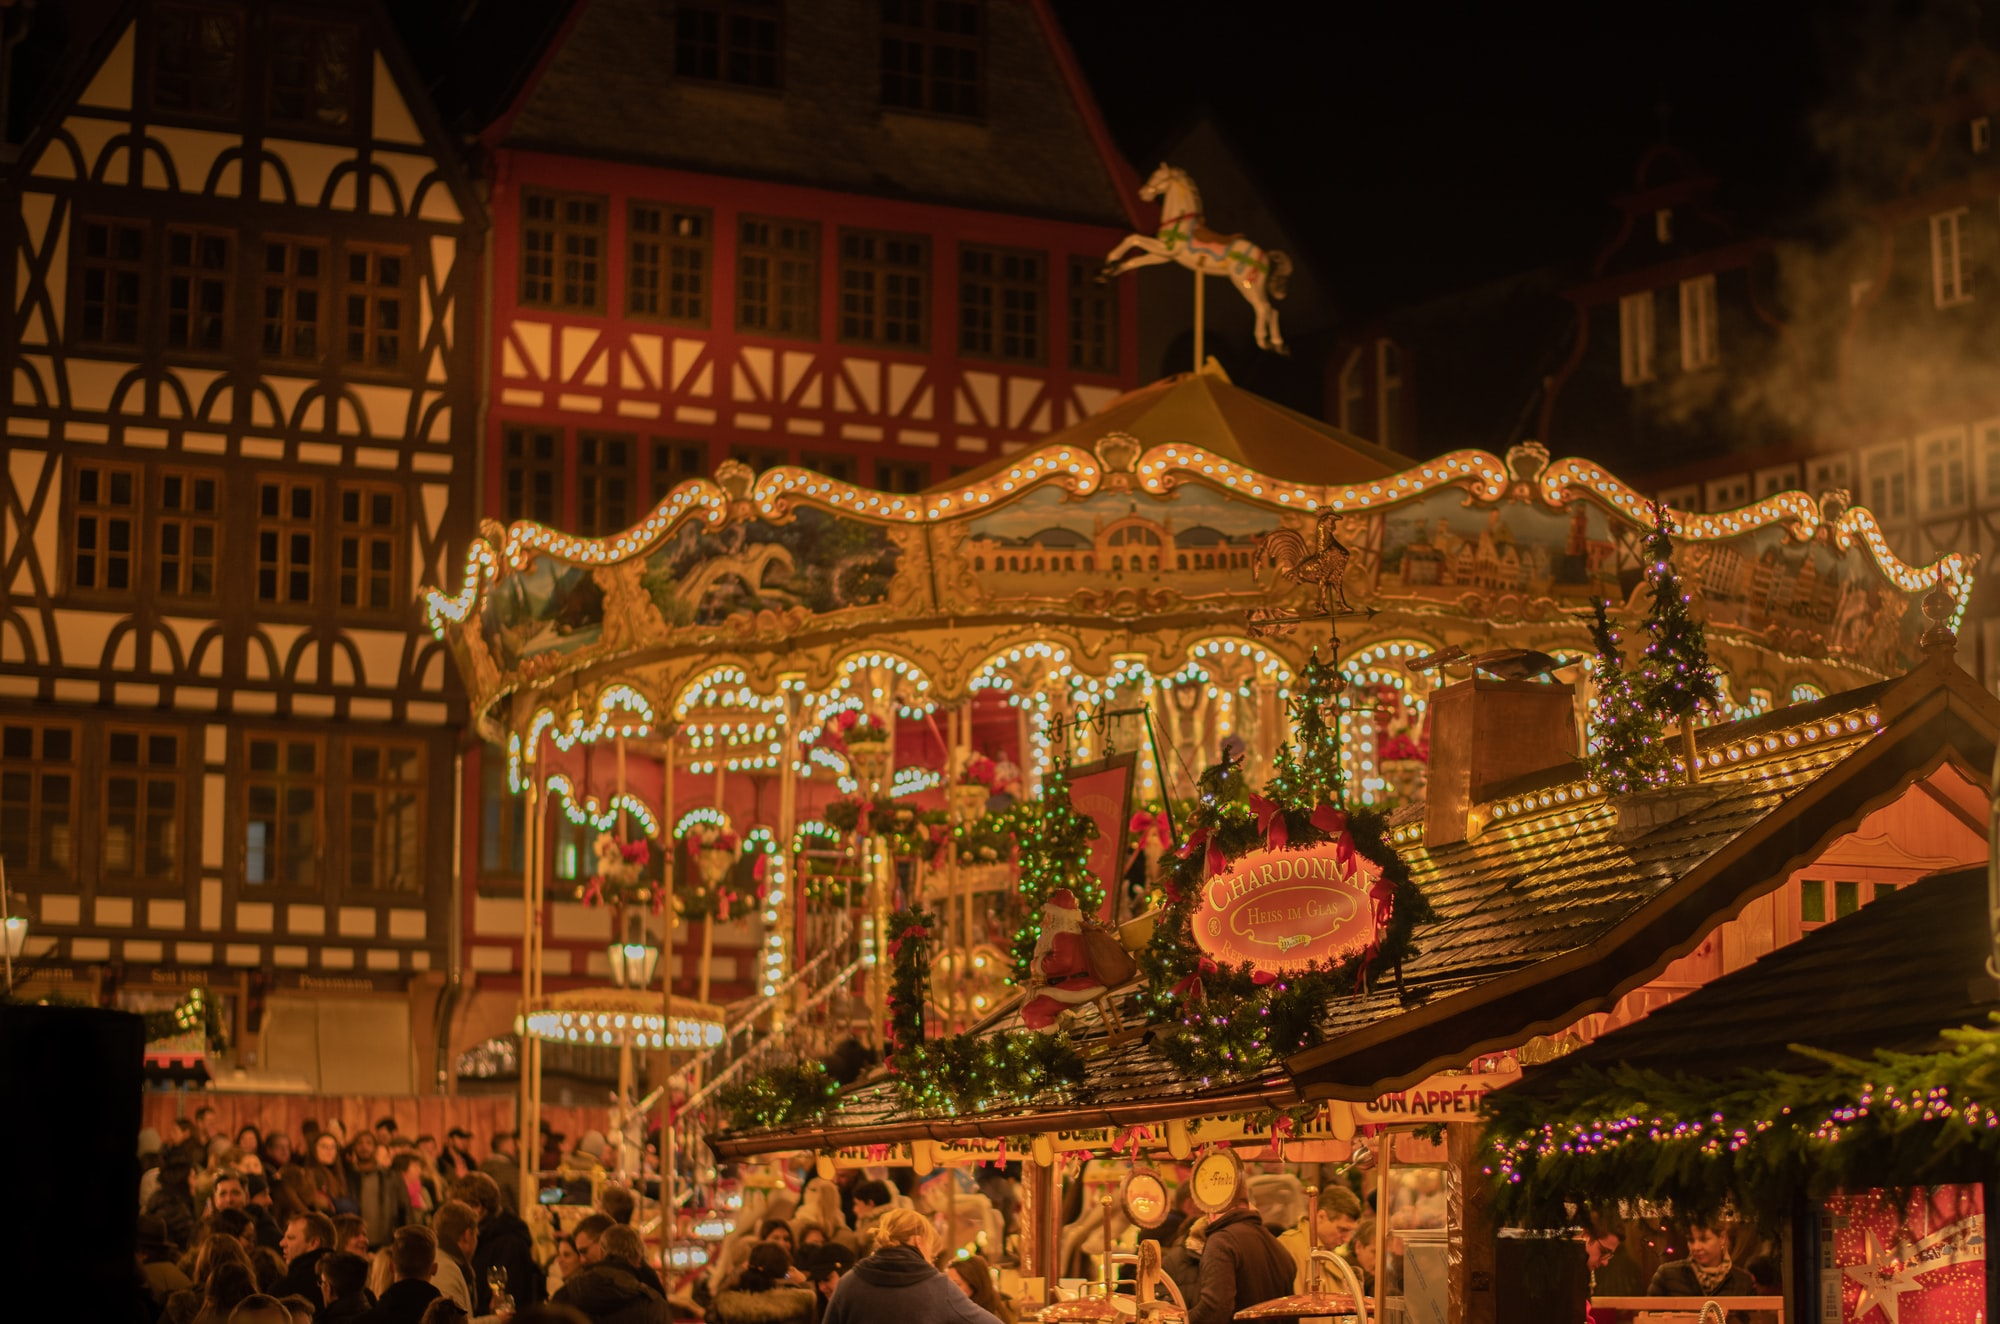 """a beautiful historic carousel at the Frankfurt Christmas Market in Germany. The amazing medieval truss houses create an unfathomable beautiful """"winter wonderland"""" atmosphere."""